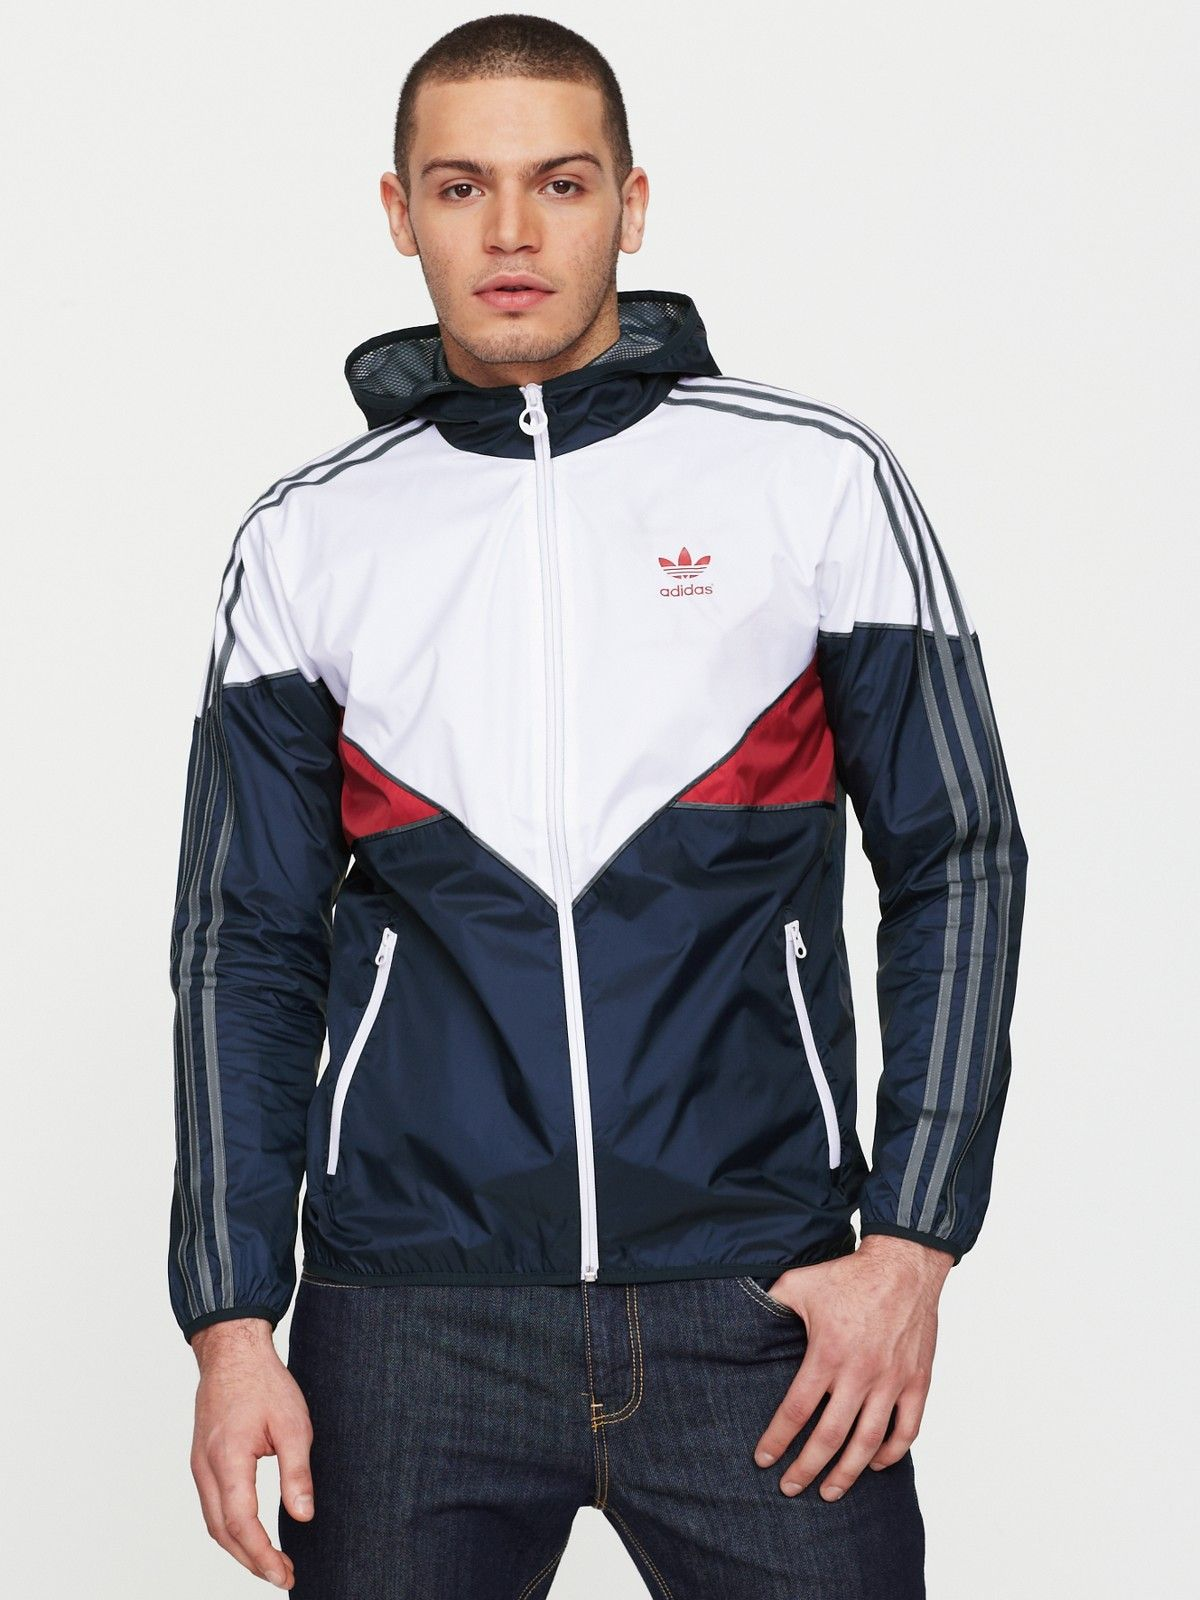 Adidas Originals Originals Mens Windbreaker Jacket | Moda ...